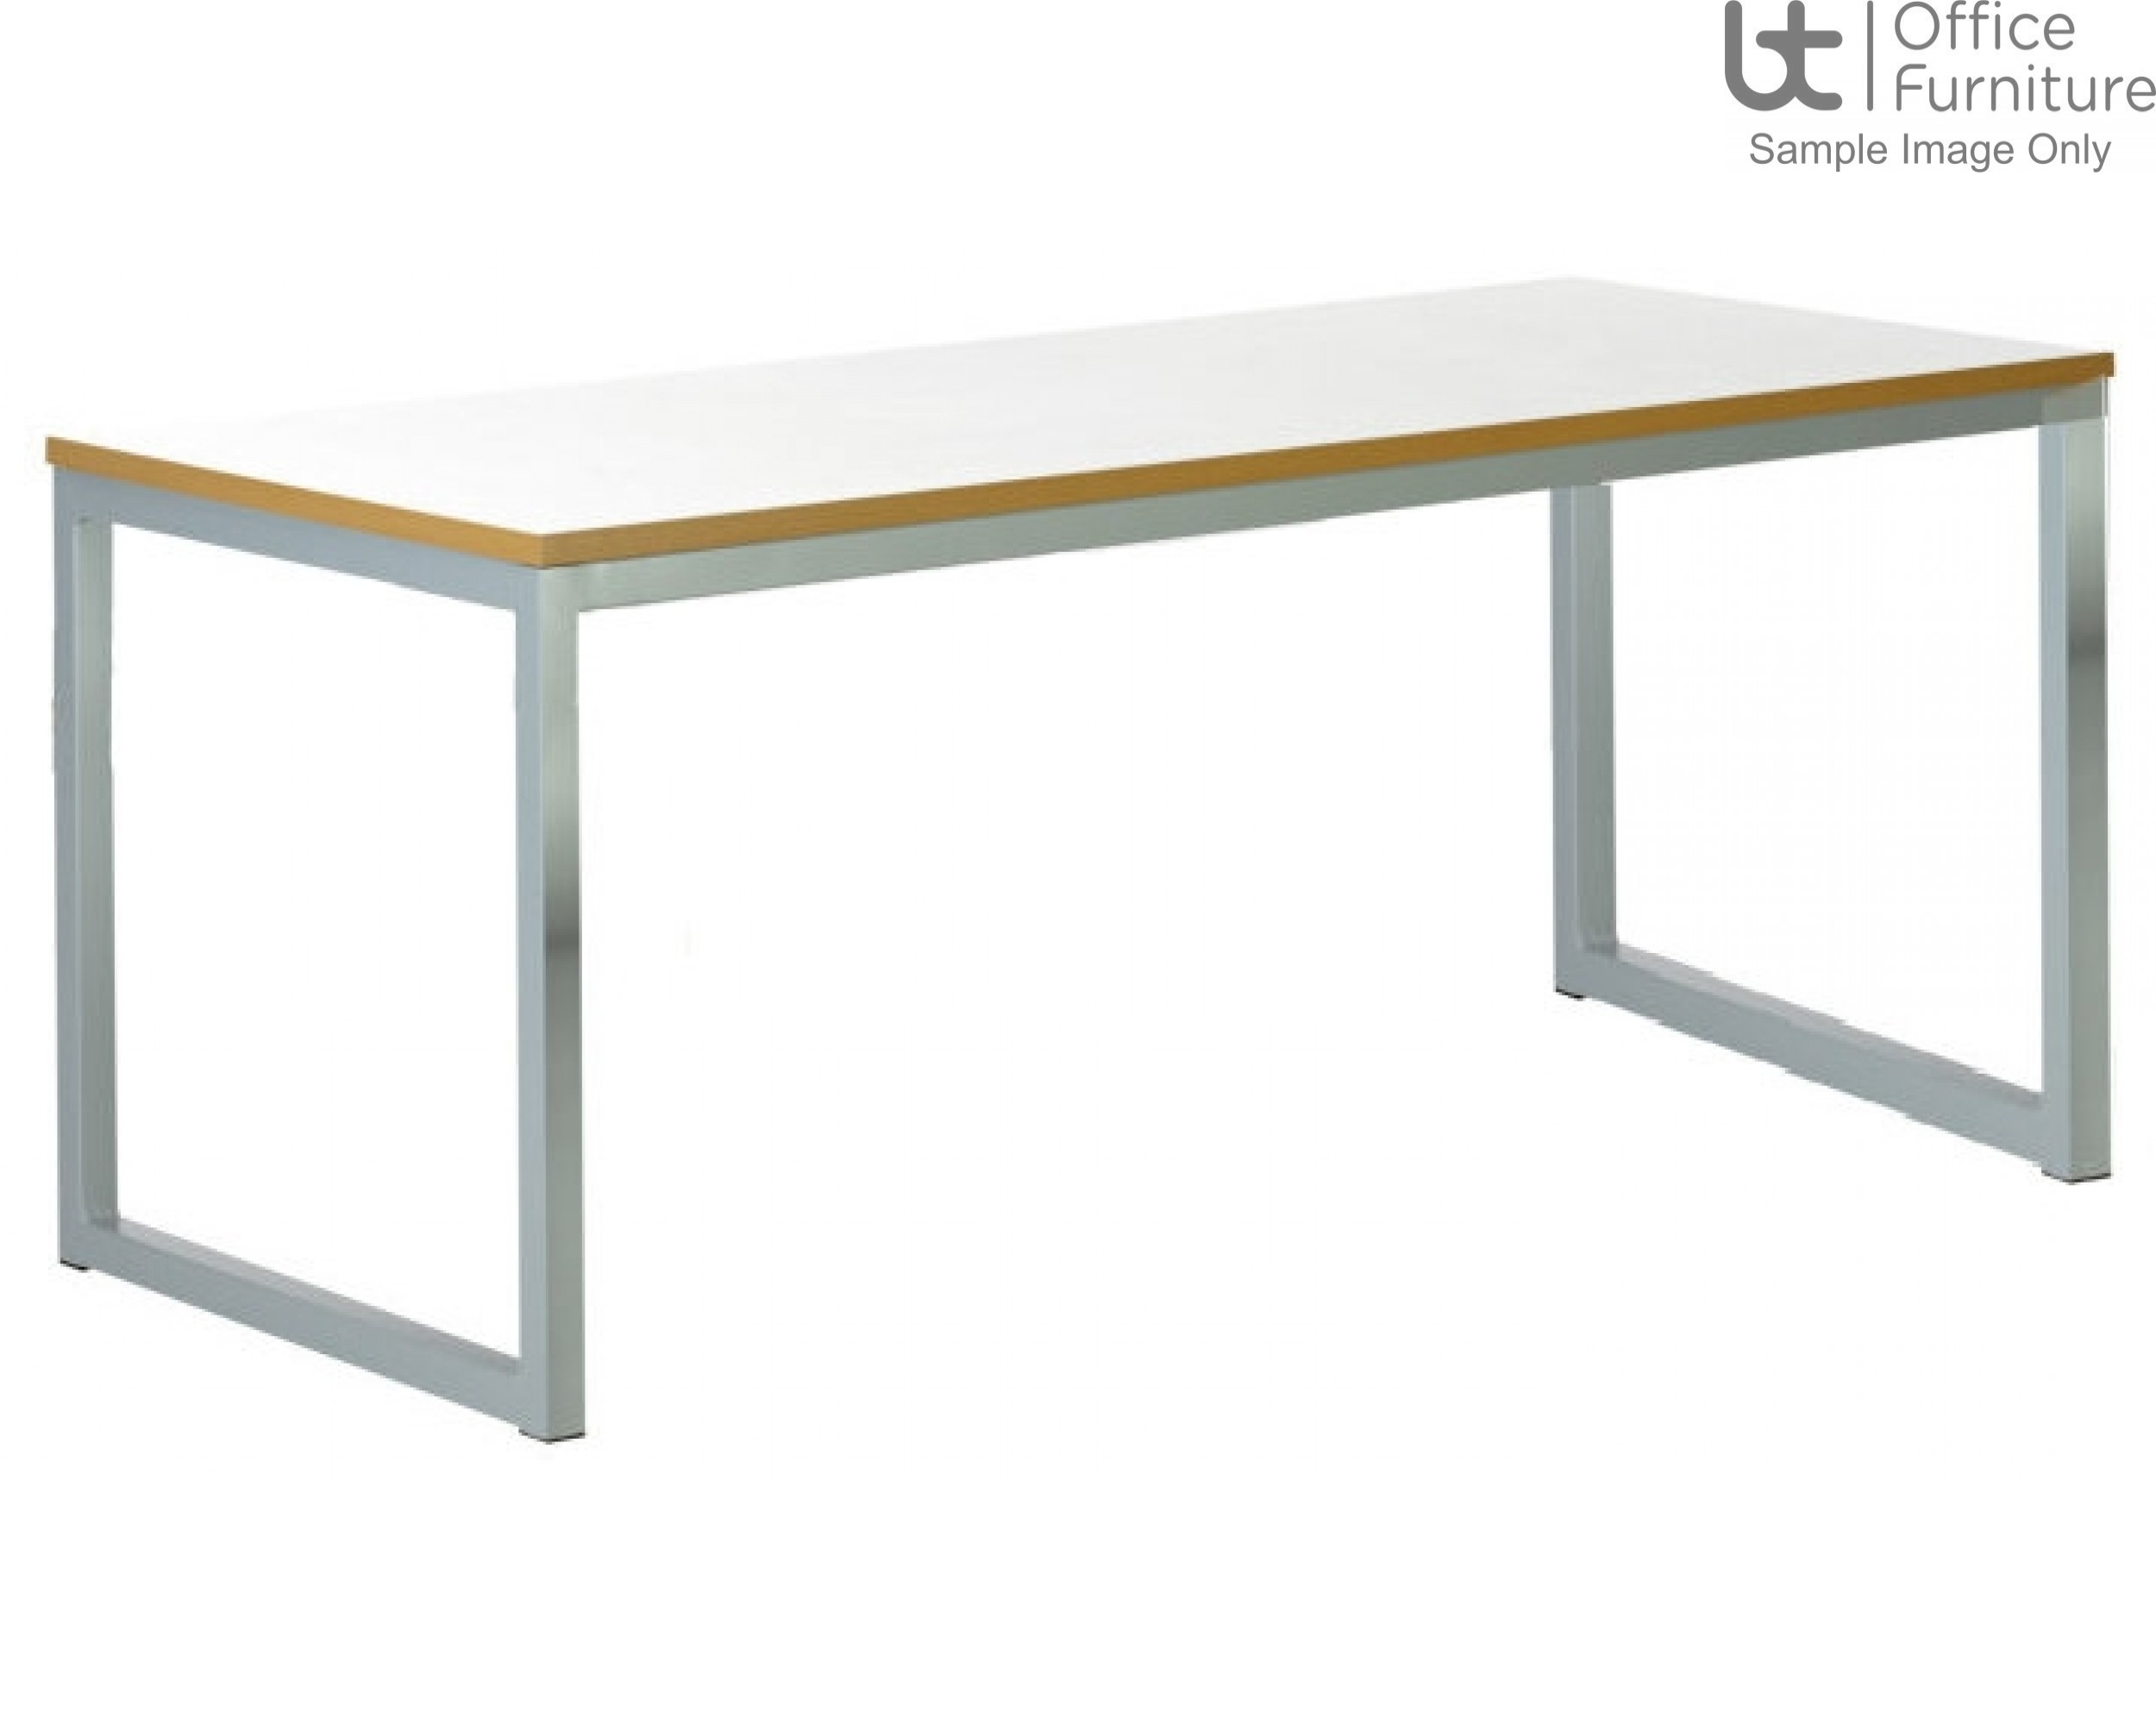 Urban 40/40 Robust 25mm Laminate Top School Bench Dining Table W1500mm (Std Frame Colours)